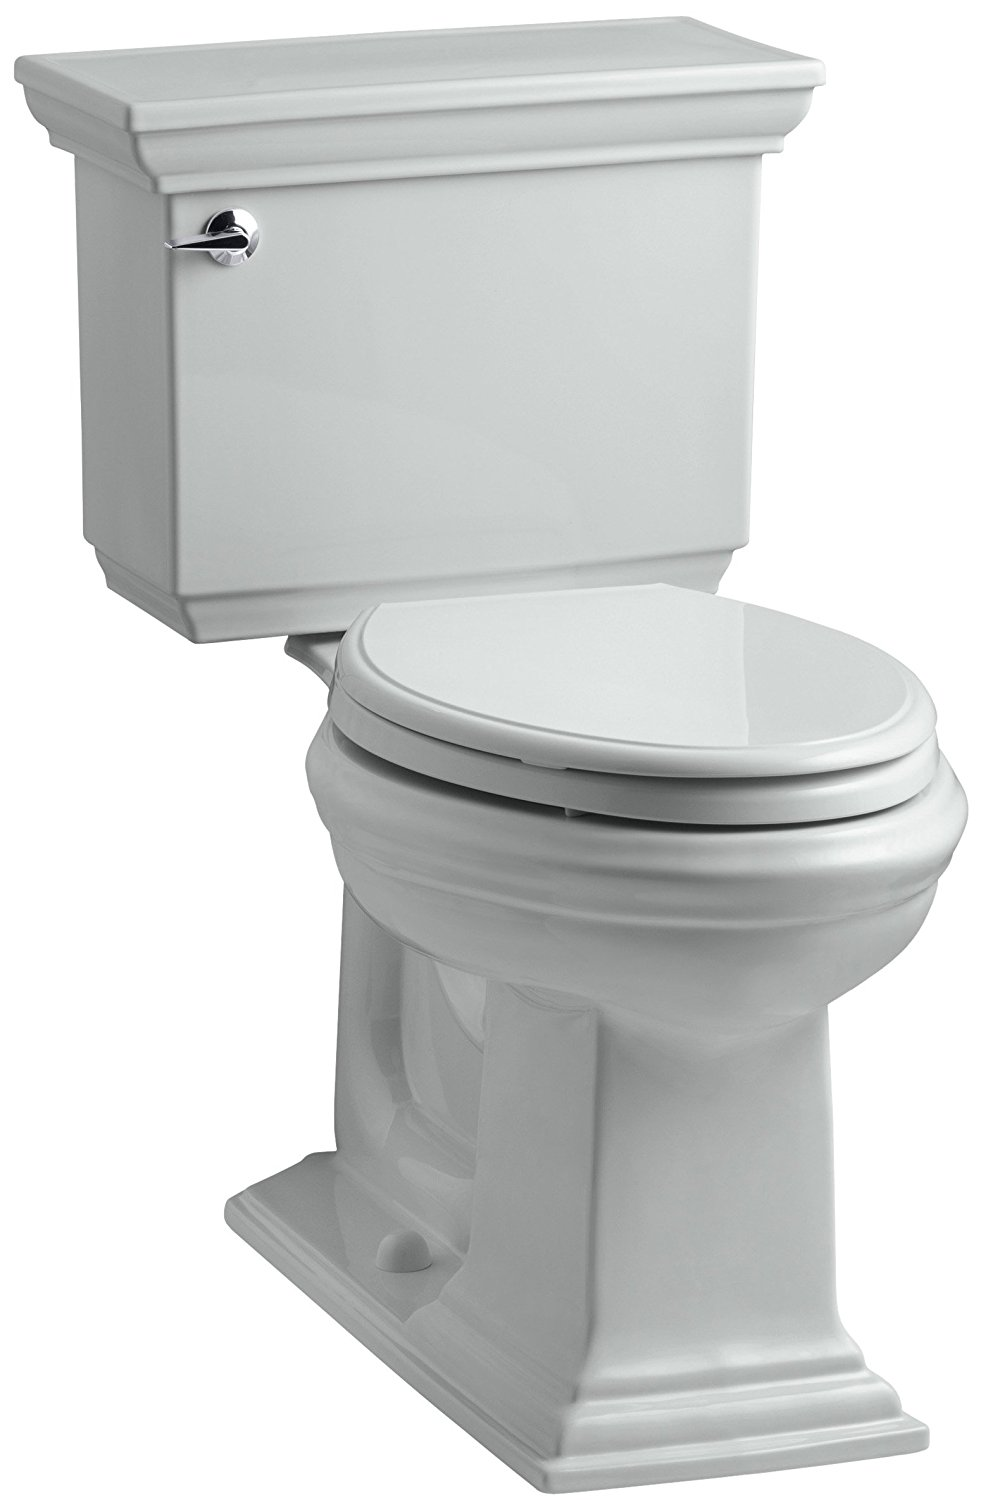 KOHLER K-3817-95 Memoirs Stately Comfort Height Two-Piece Elongated 1.28 GPF Toilet with AquaPiston Flush Technology and Left-Hand Trip Lever, Ice Grey